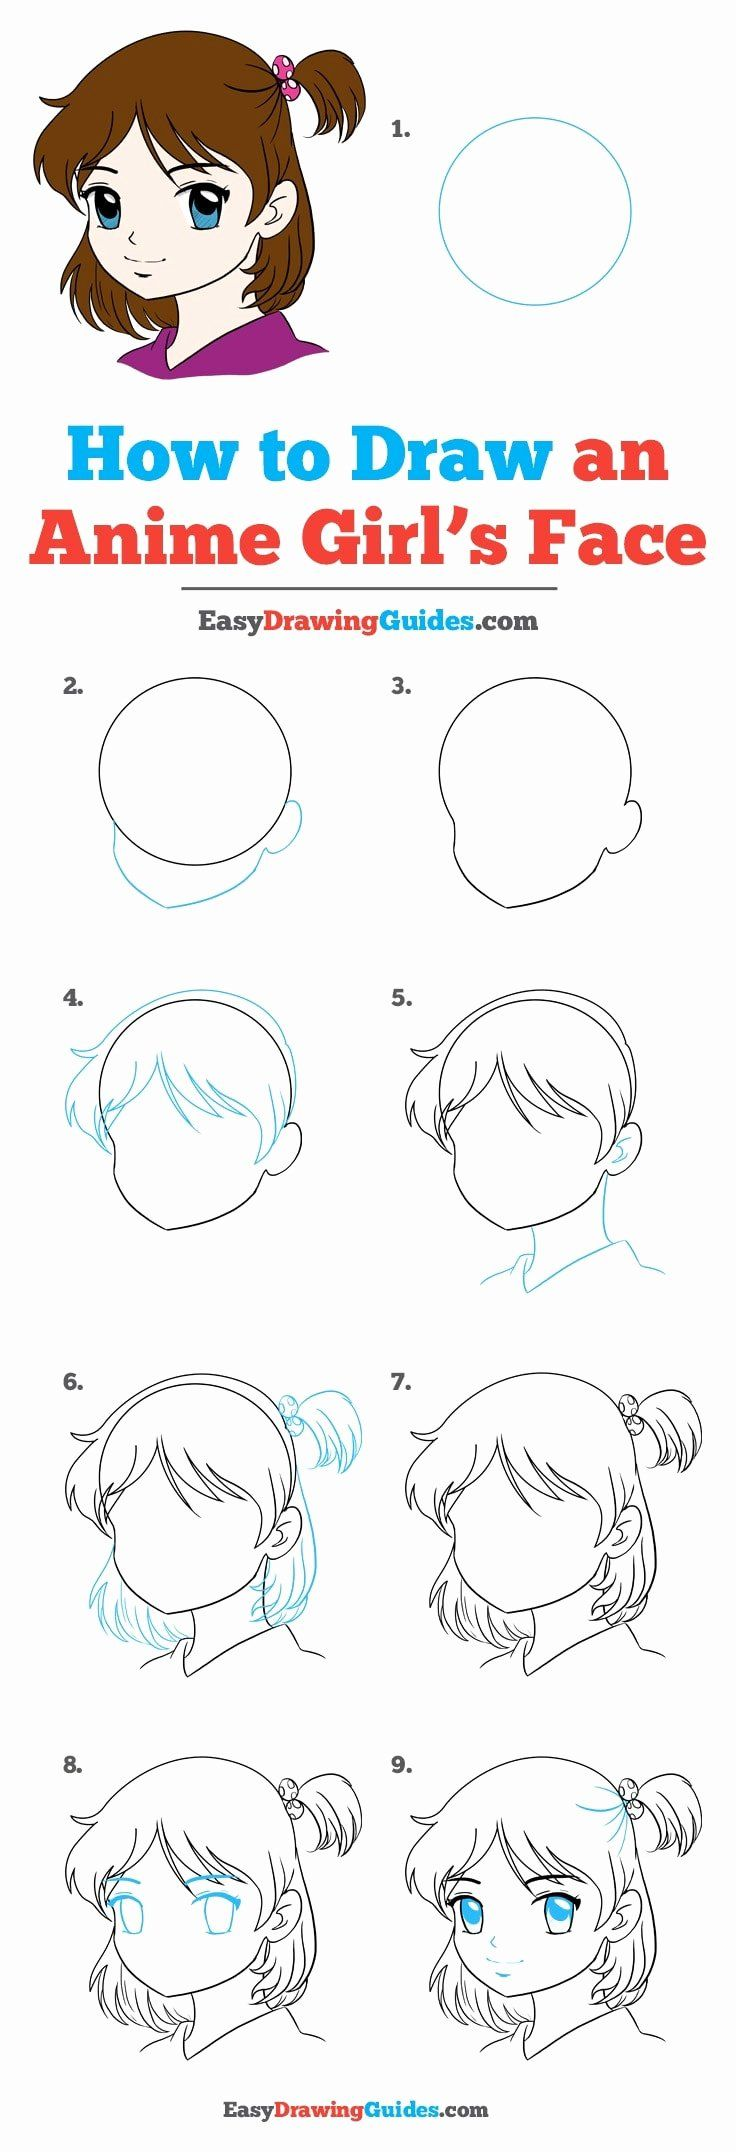 Manga Drawing Book Guy Eyes Unique Anime Drawing Tutorial At Paintingvalley In 2020 Drawing Tutorial Drawing Tutorials For Kids Easy Drawings